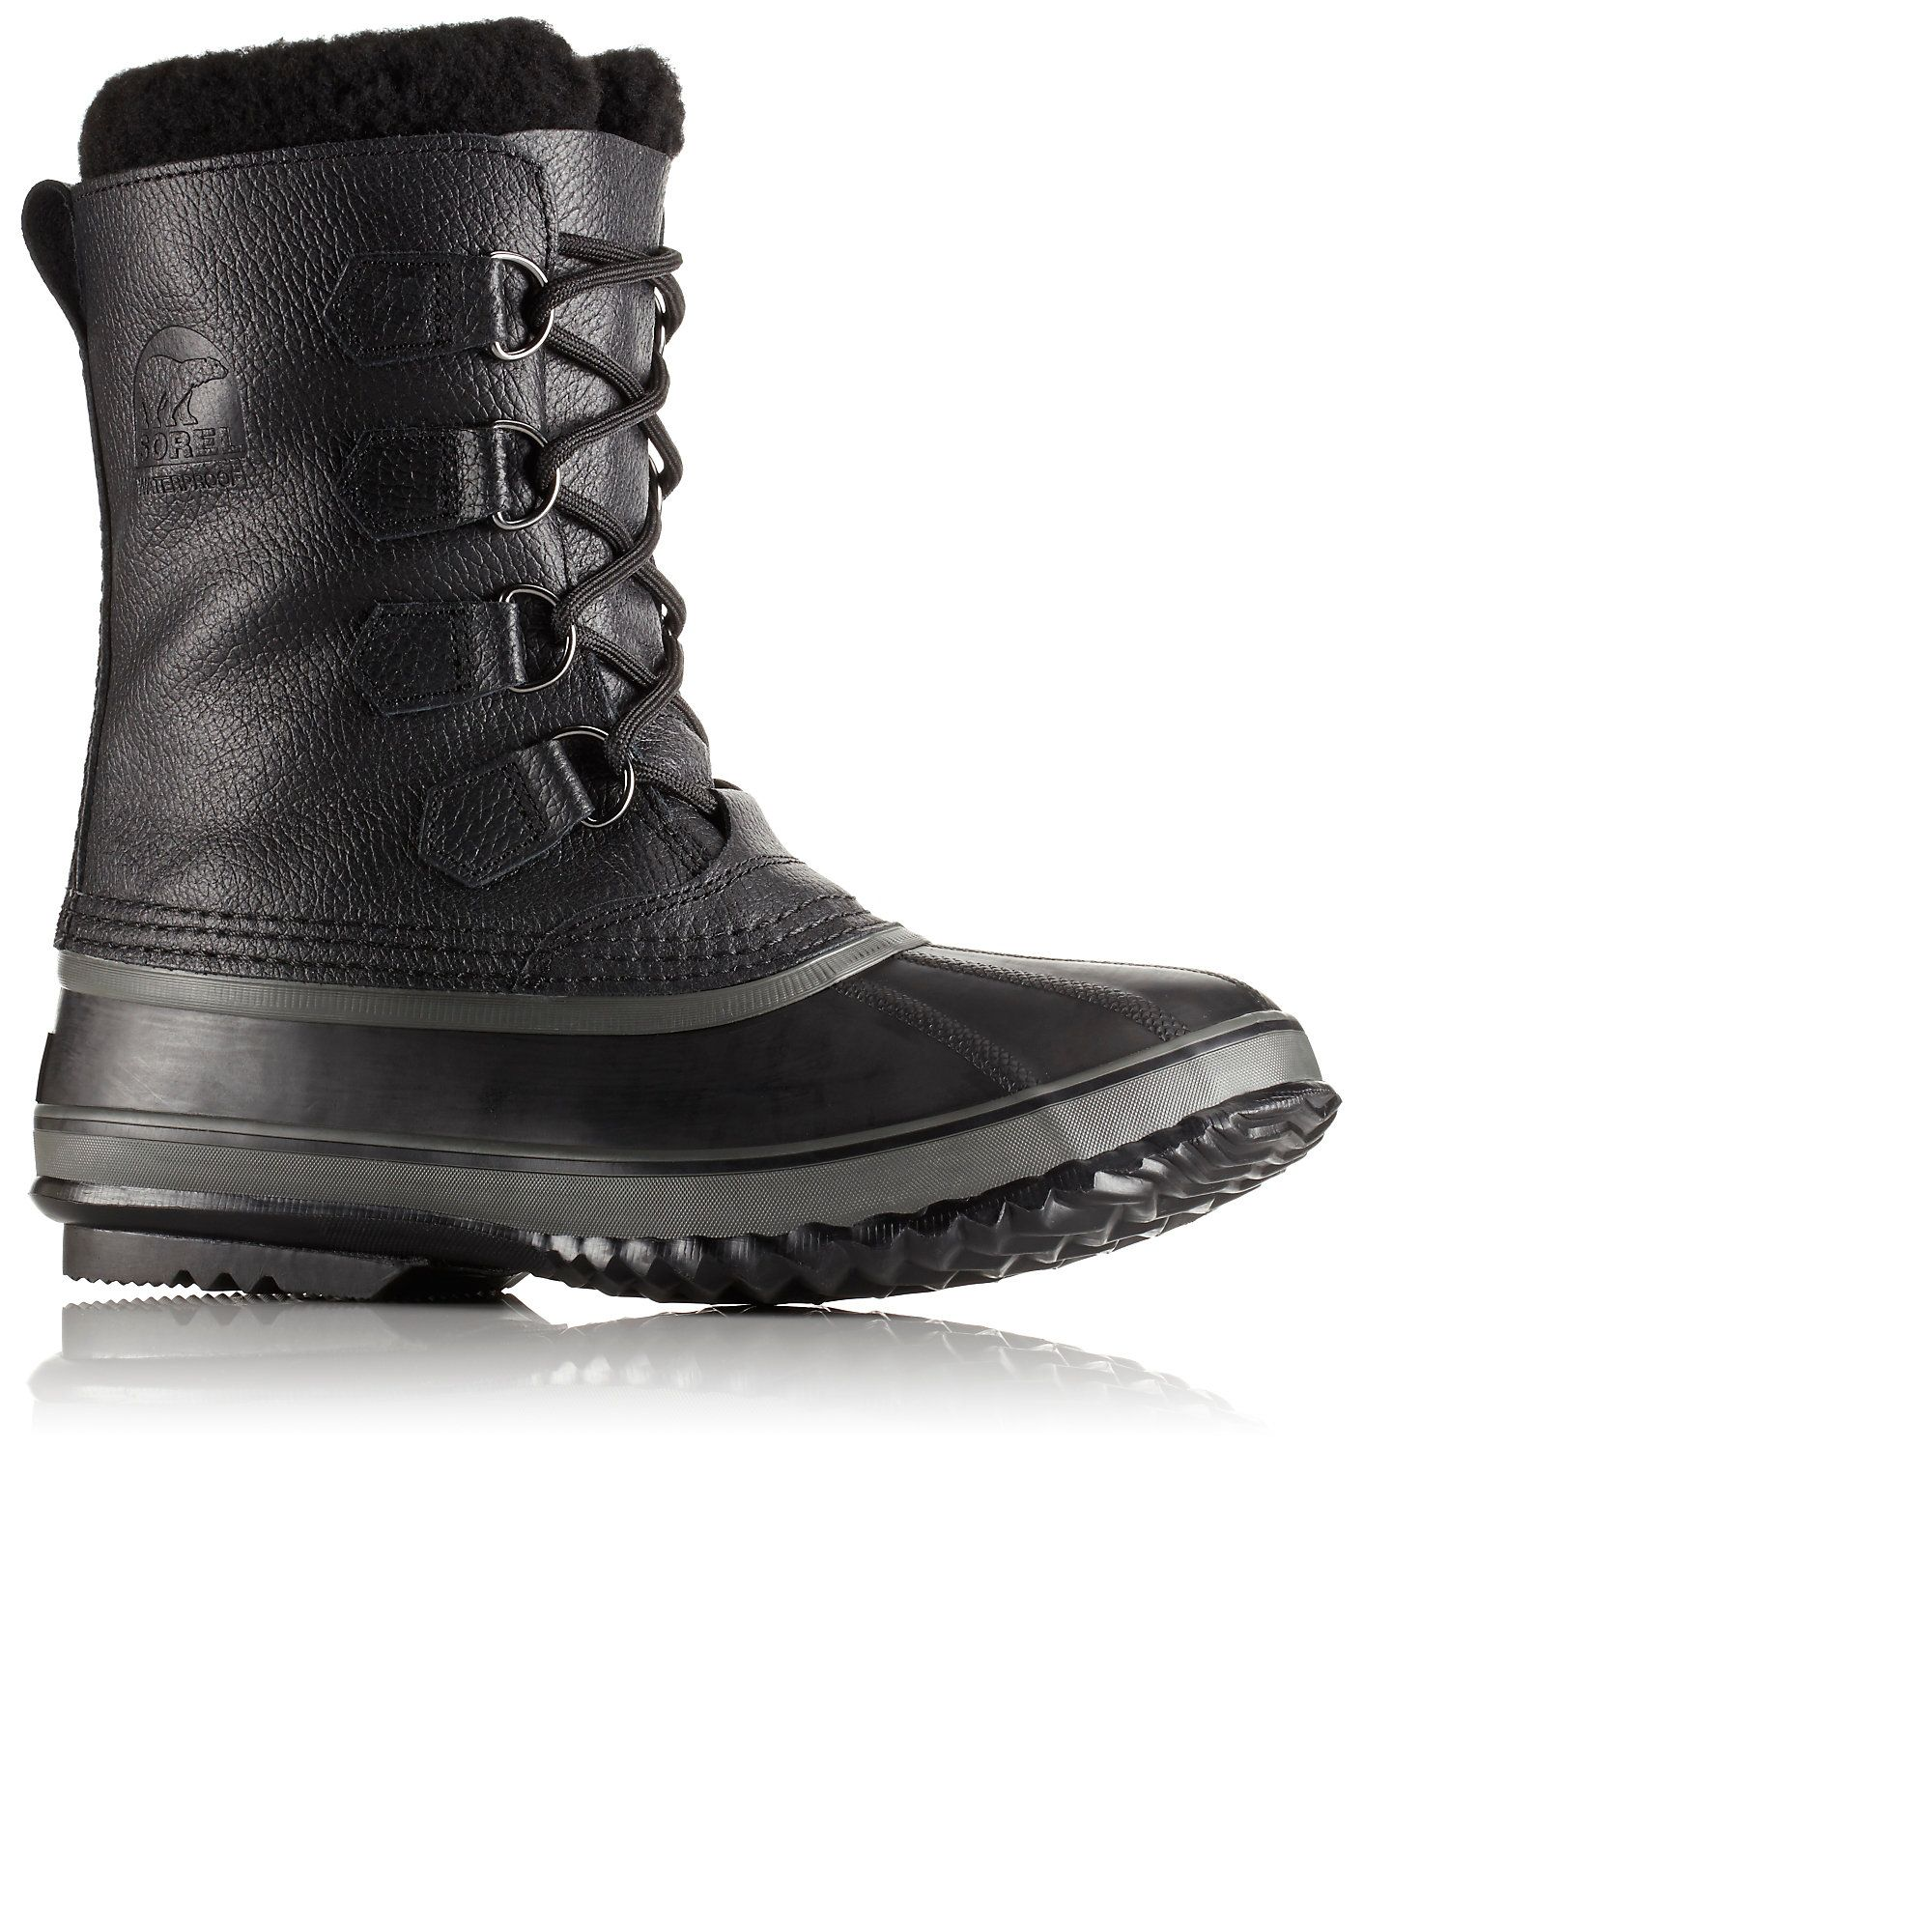 cdc3372f999 Men's 1964 PAC™ T Boot | Products | Waterproof boots, Boots, Cool boots